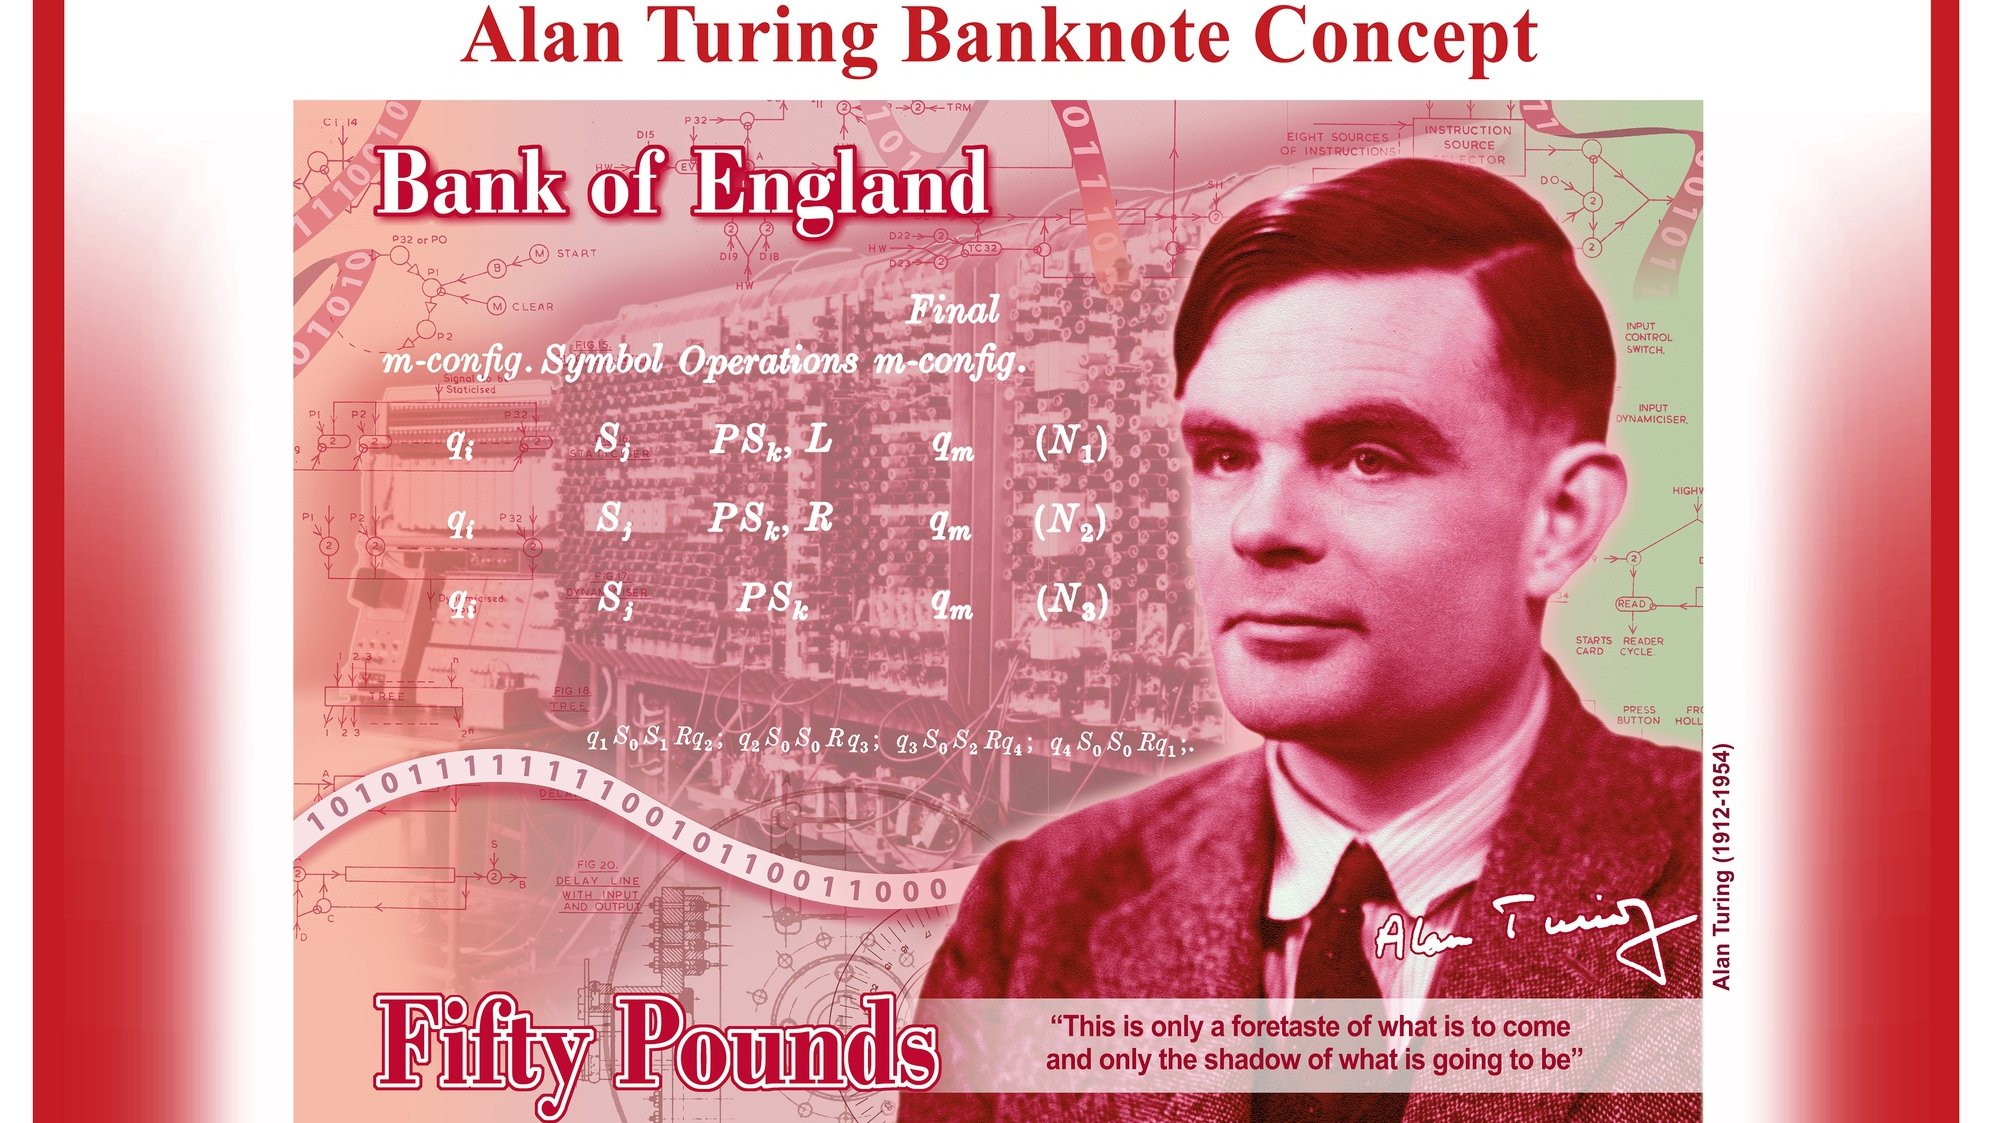 """epa07718246 An undated handout photo made available by the British Bank of England on 15 July 2019 showing the new concept image design of the Bank of England's 50 GBP note featuring British computer pioneer and codebreaker Alan Turing. Bank of England Governor, Mark Carney, announced that Alan Turing will appear on the new polymer note. Alan Turing was an outstanding mathematician whose work has had an enormous impact on how we live today. As the father of computerscience and artificial intelligence, as well as war hero, Alan Turing's contributions were far ranging and path breaking. Turing is a giant on whose shoulders so many now stand.""""Alan Turing provided the theoretical underpinnings for the modern computer. While best known for his work devising code-breaking machines during WWII, Turing played a pivotal role in the development of early computers first at the National Physical Laboratory and later at the University of Manchester. EPA/BANK OF ENGLAND / HANDOUT MANDATORY CREDIT HANDOUT EDITORIAL USE ONLY/NO SALES"""